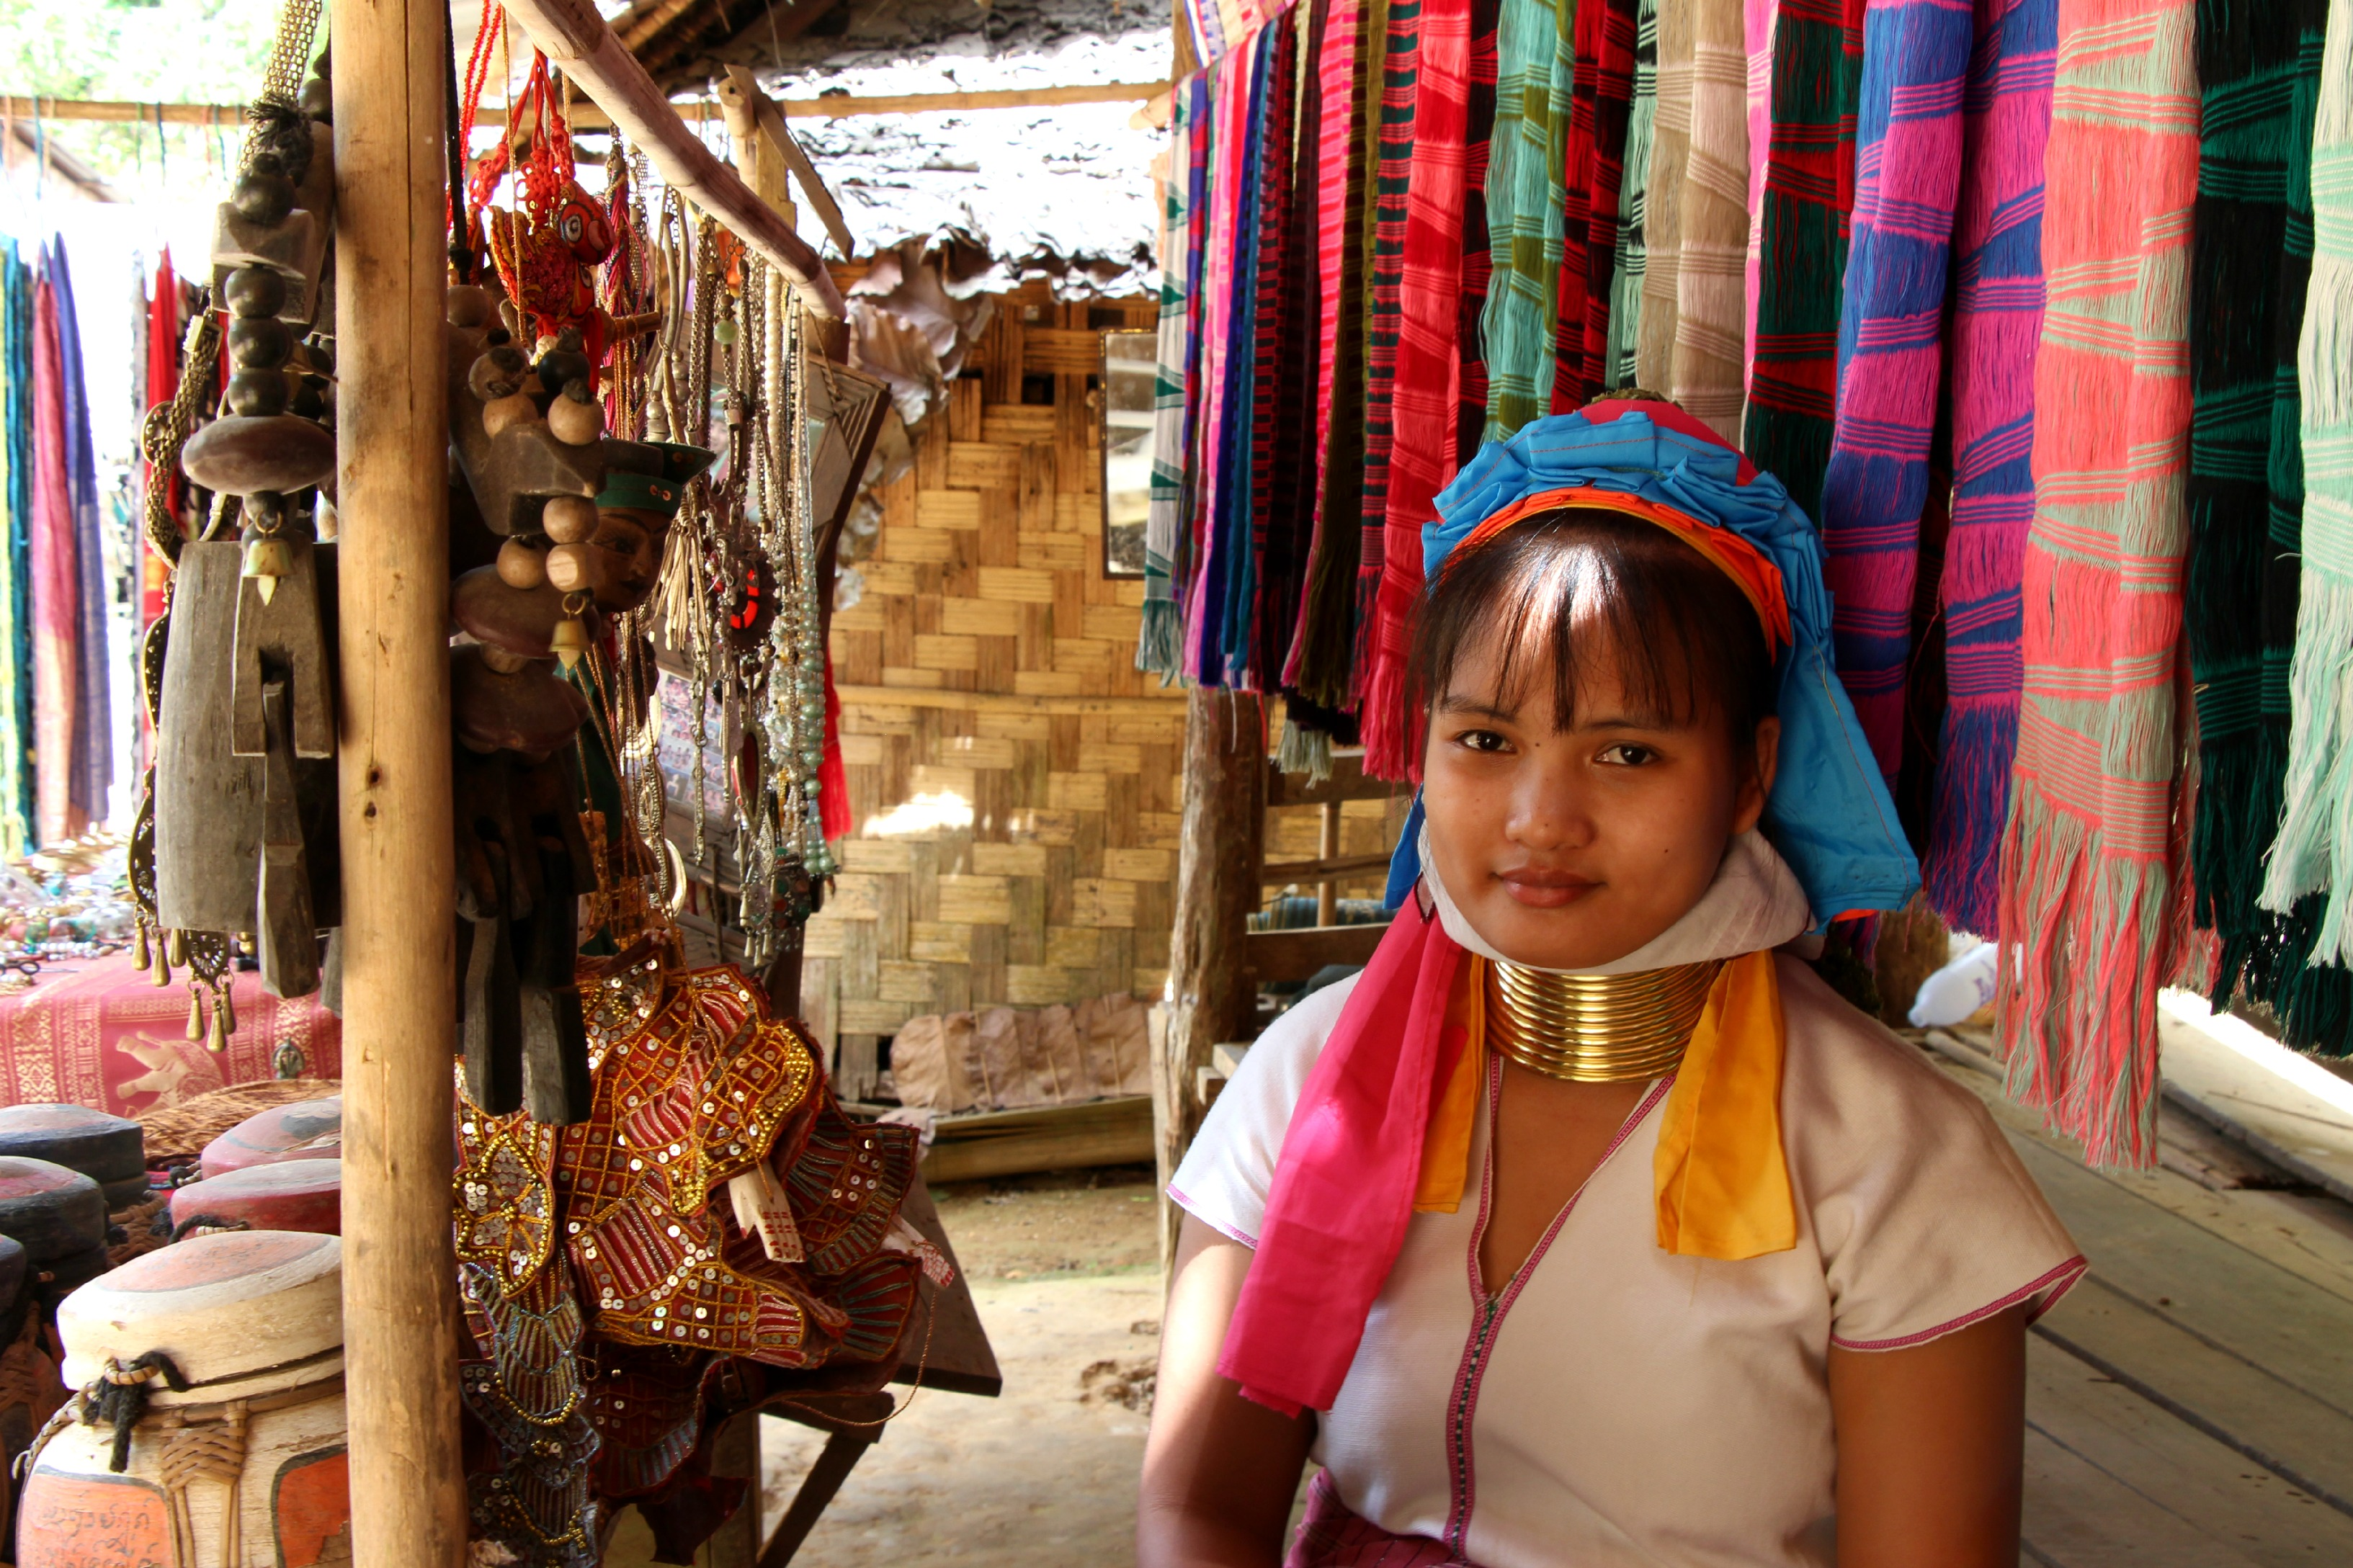 Mapaung is one of the two remaining long-necked women in Kayan Tharyar. (PHOTO: Melanie Keyte).